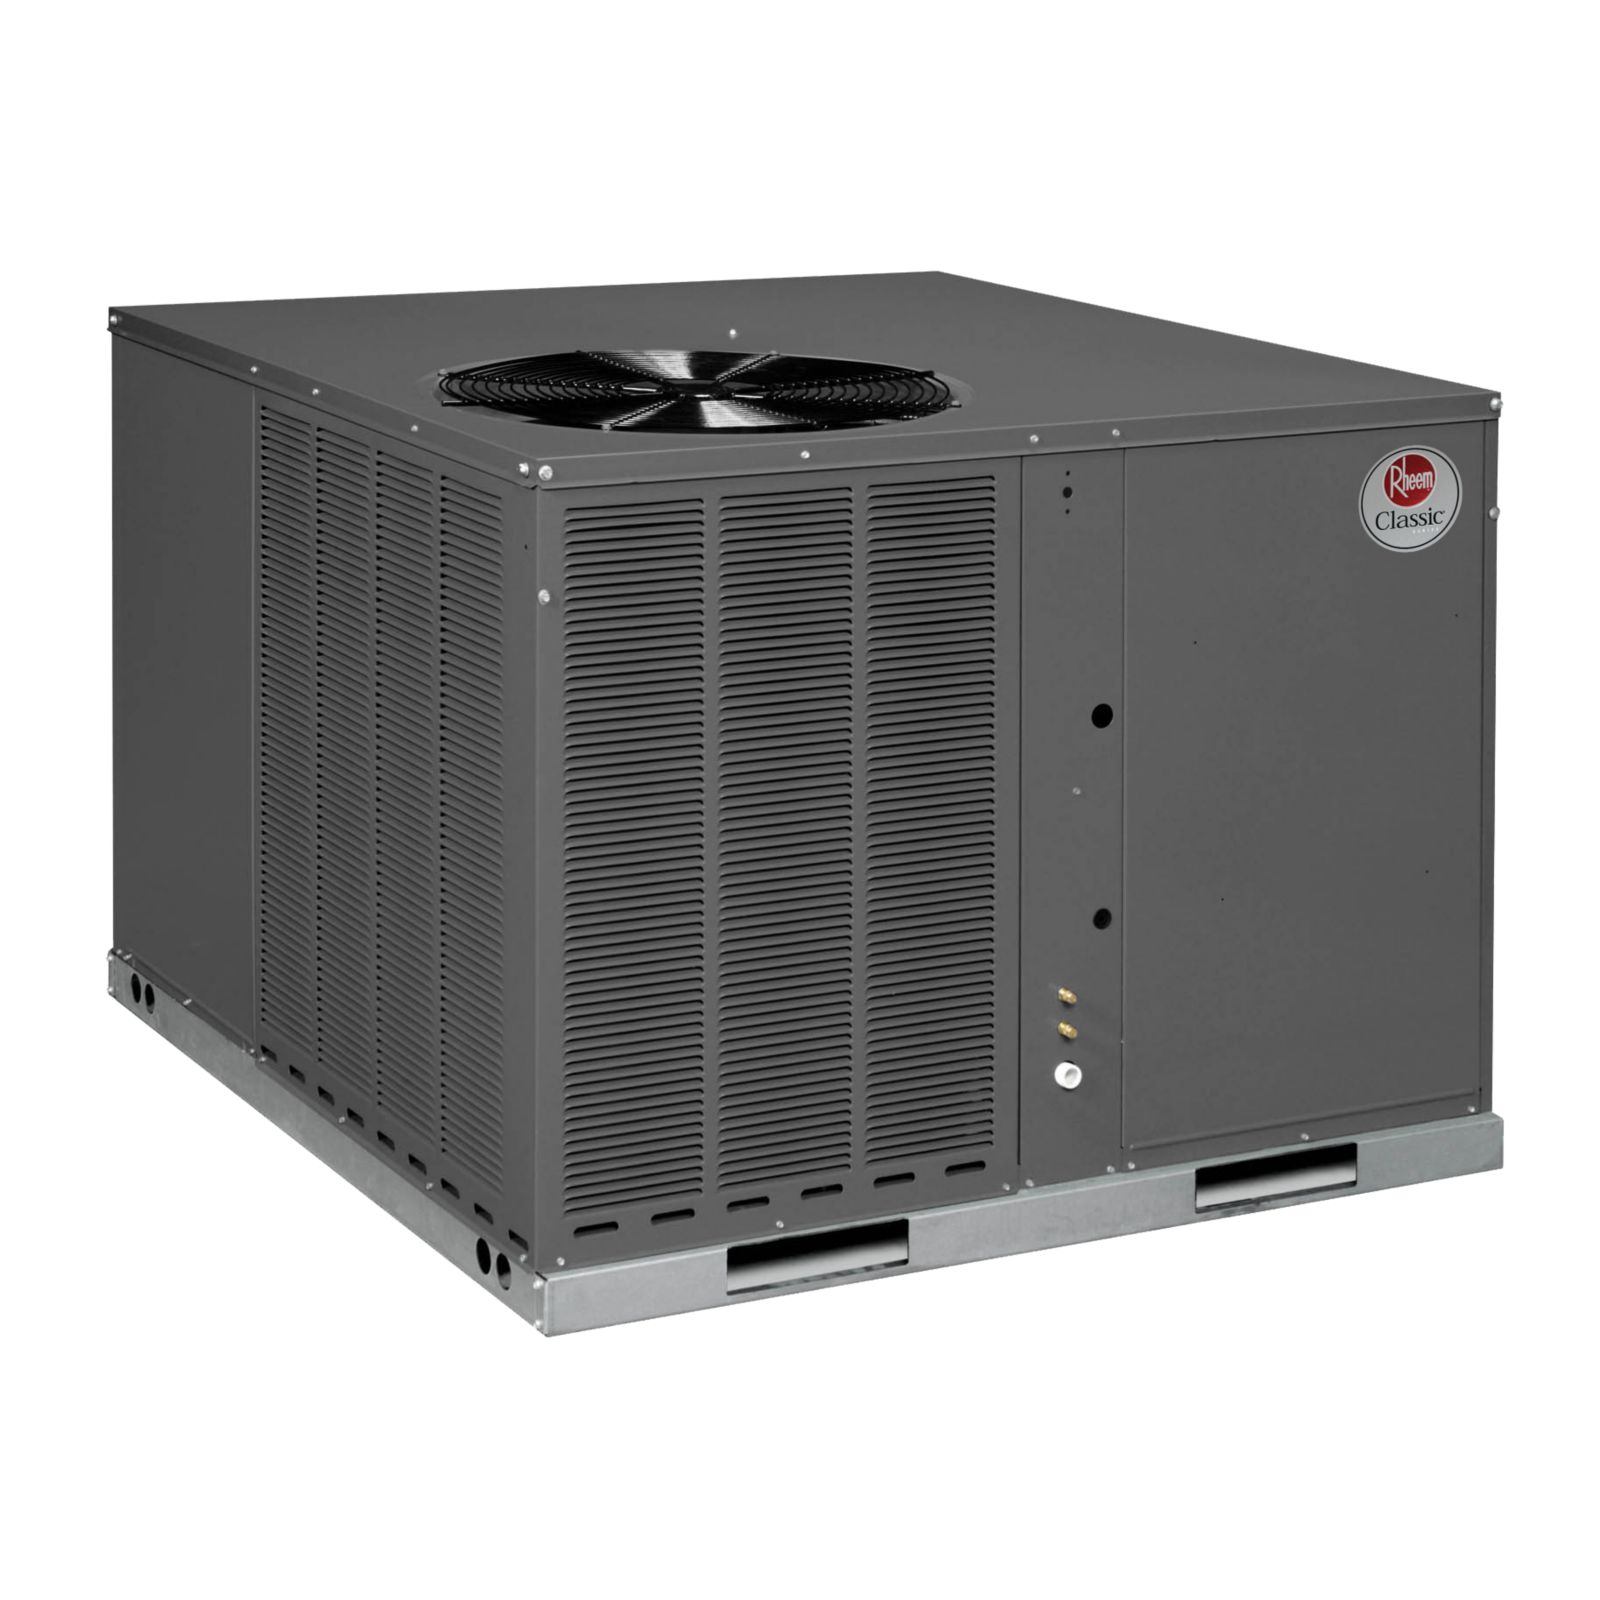 Rheem RQPL-B024JK000 - 2 Ton, 14 SEER, R410A, Packaged Heat Pump, 208-230 V, 1 Ph, 60 Hz